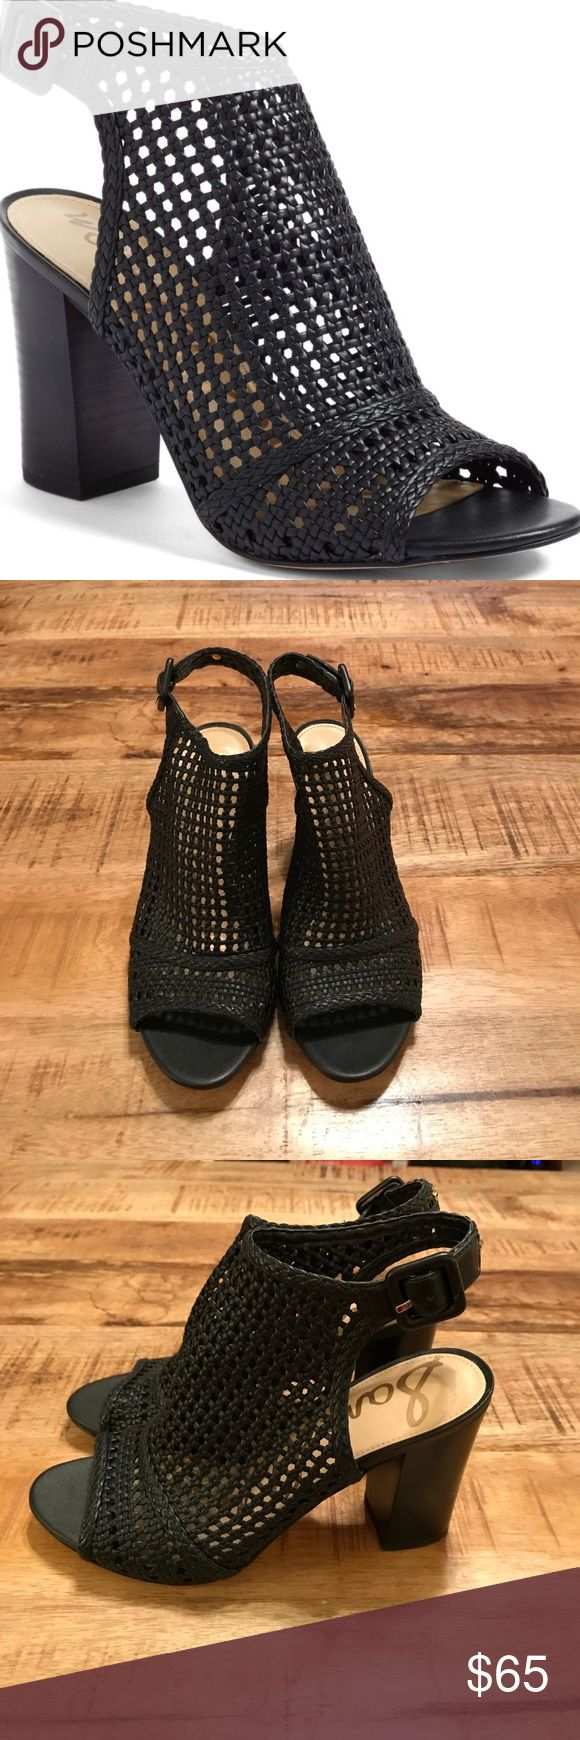 """Sam Edelman 'Evie' woven sandal size 7 Like new condition! Only flaw is soles which is just sticker residue. Black mesh block heel booties size 7. Description: """"A basket-woven upper and chunky stacked heel define a fashion-forward sandal in a bootie-inspired silhouette."""" Heel Style:block/chunky-stacked 3"""" heel Sam Edelman Shoes Ankle Boots & Booties"""